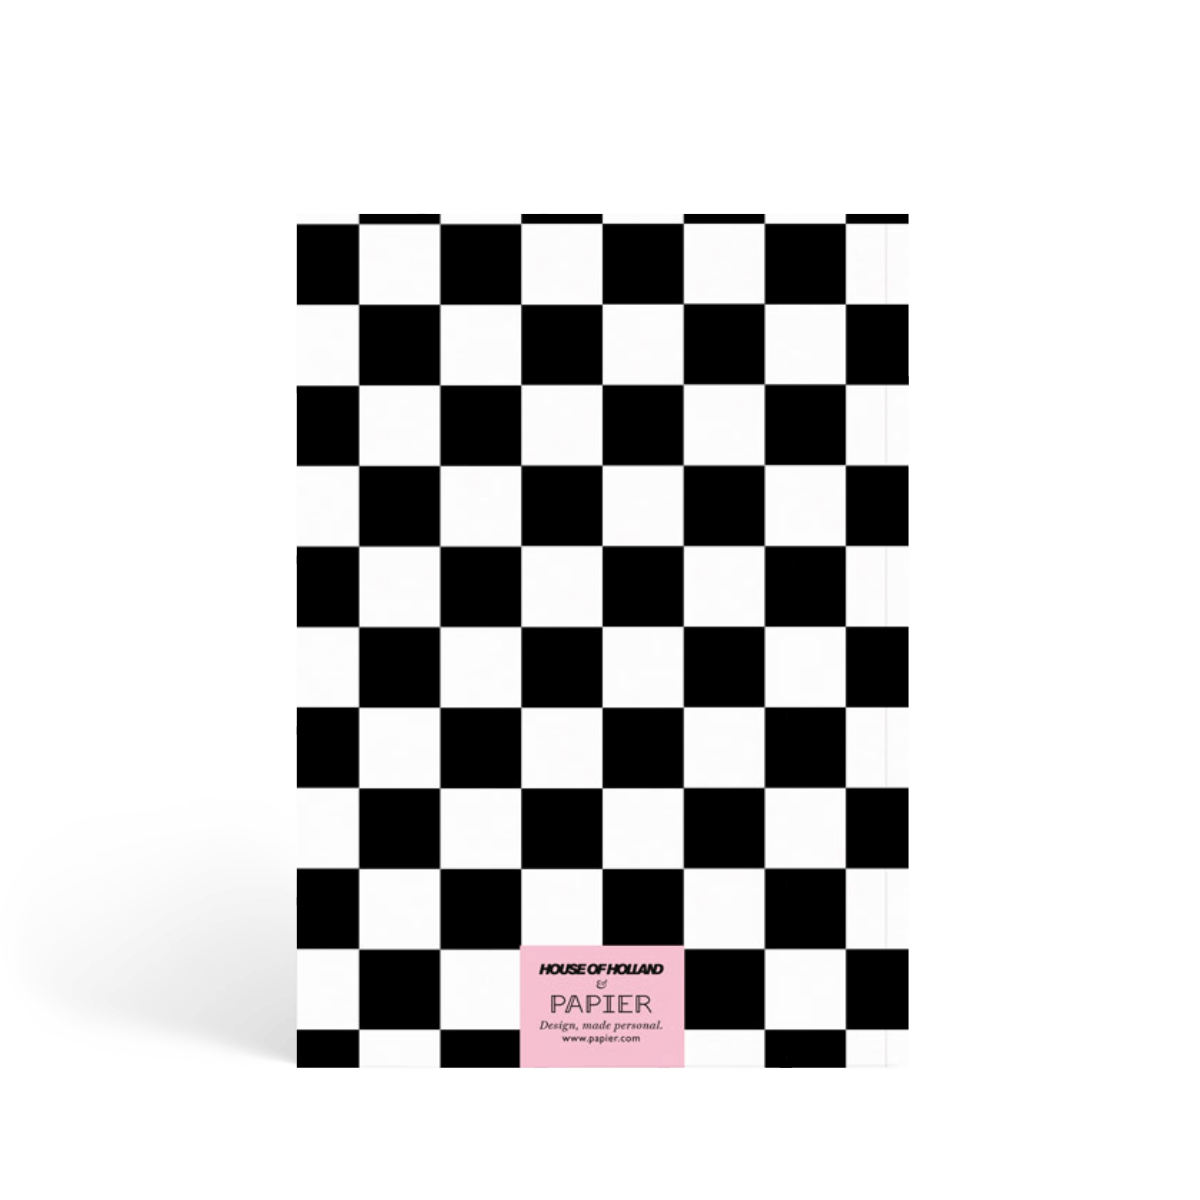 Https%3a%2f%2fwww.papier.com%2fproduct image%2f57176%2f5%2fcheckerboard 13732 back 1542370494.png?ixlib=rb 1.1